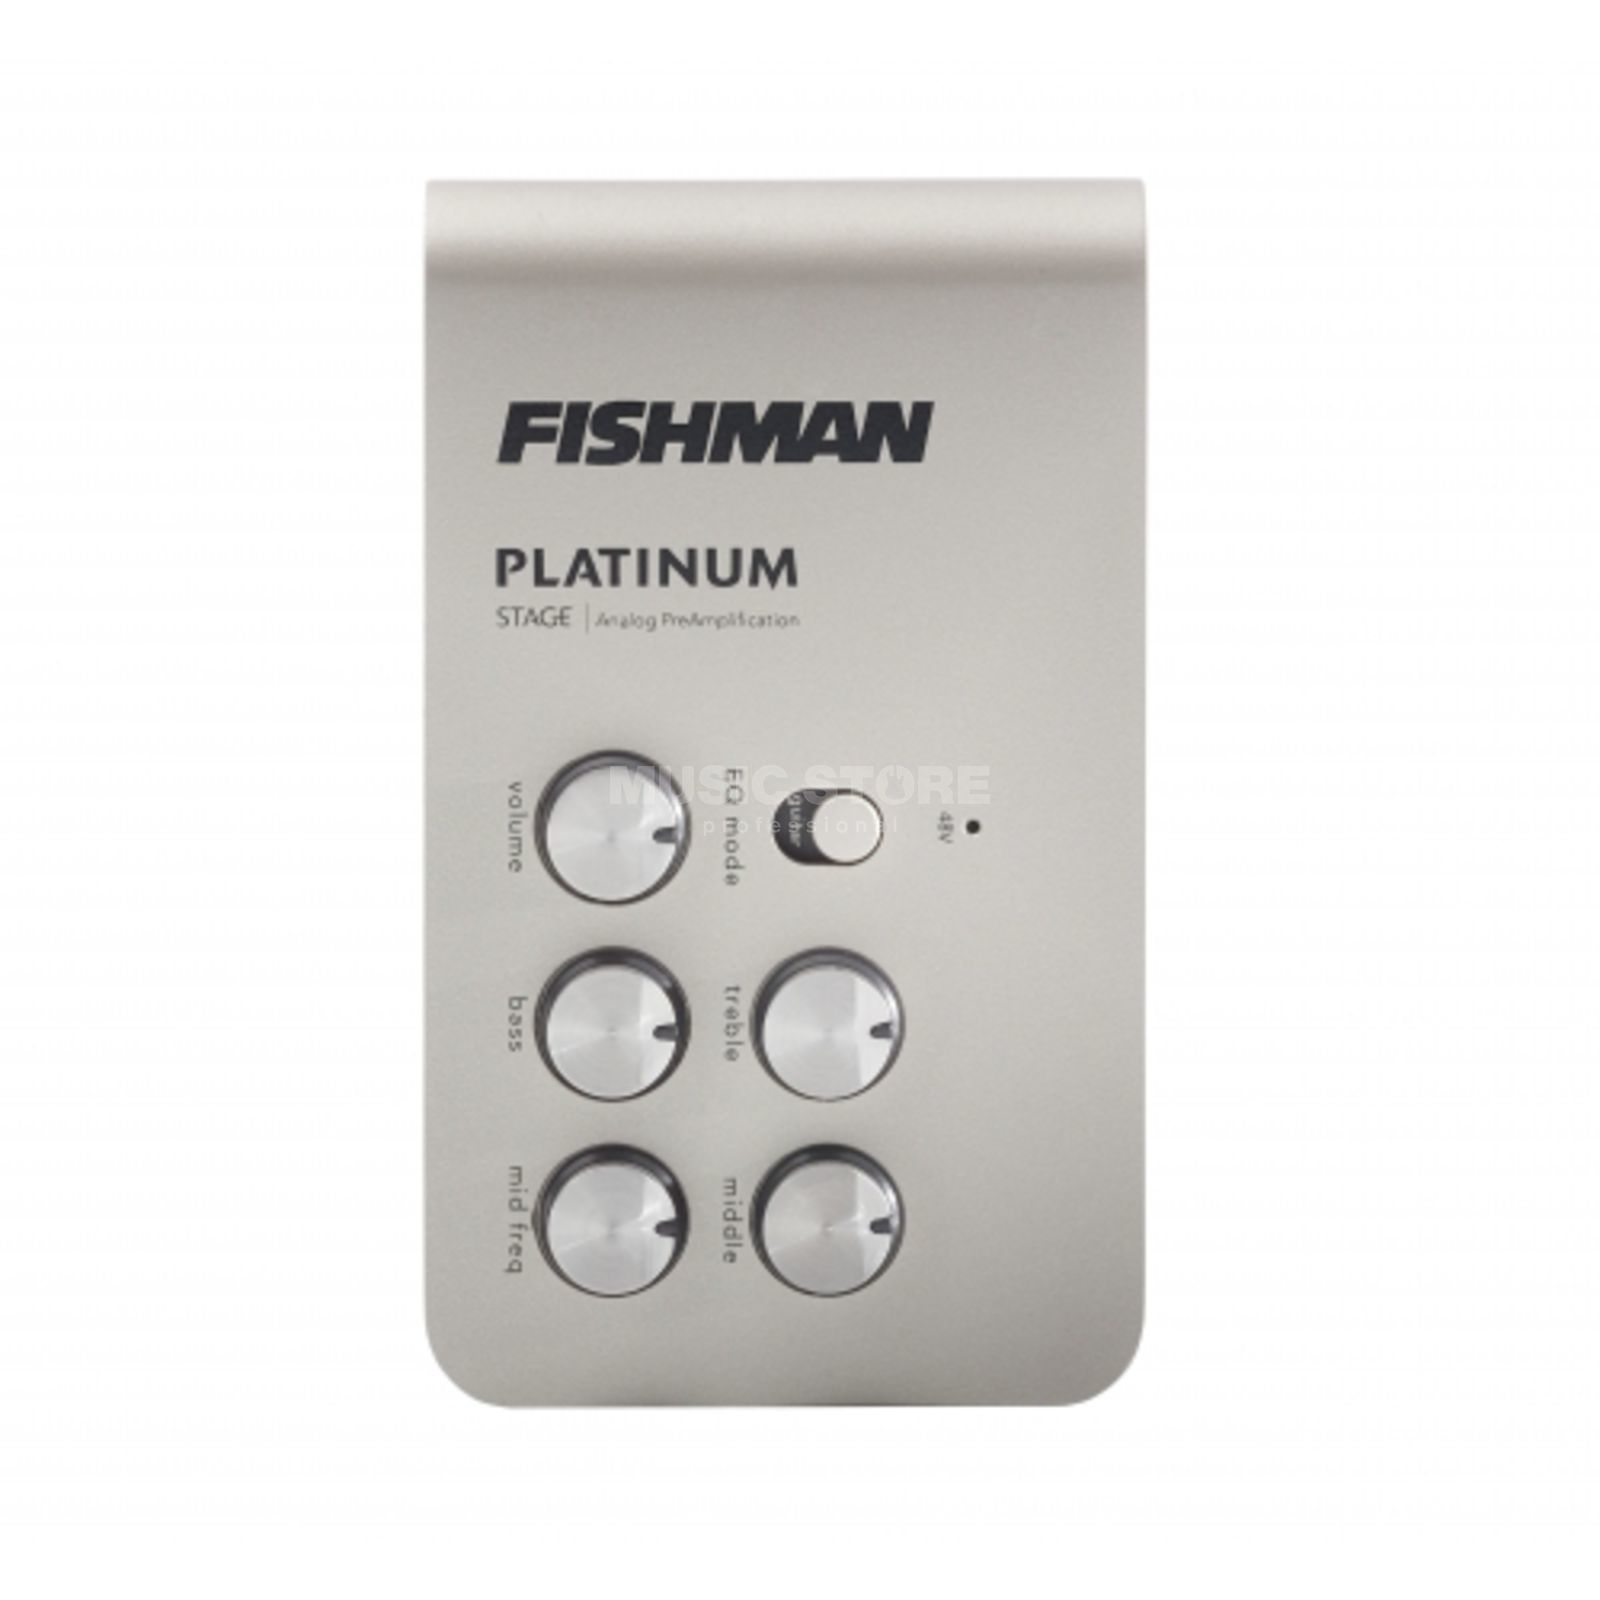 Fishman Platinum Stage 4 Bd analog preamp Εικόνα προιόντος